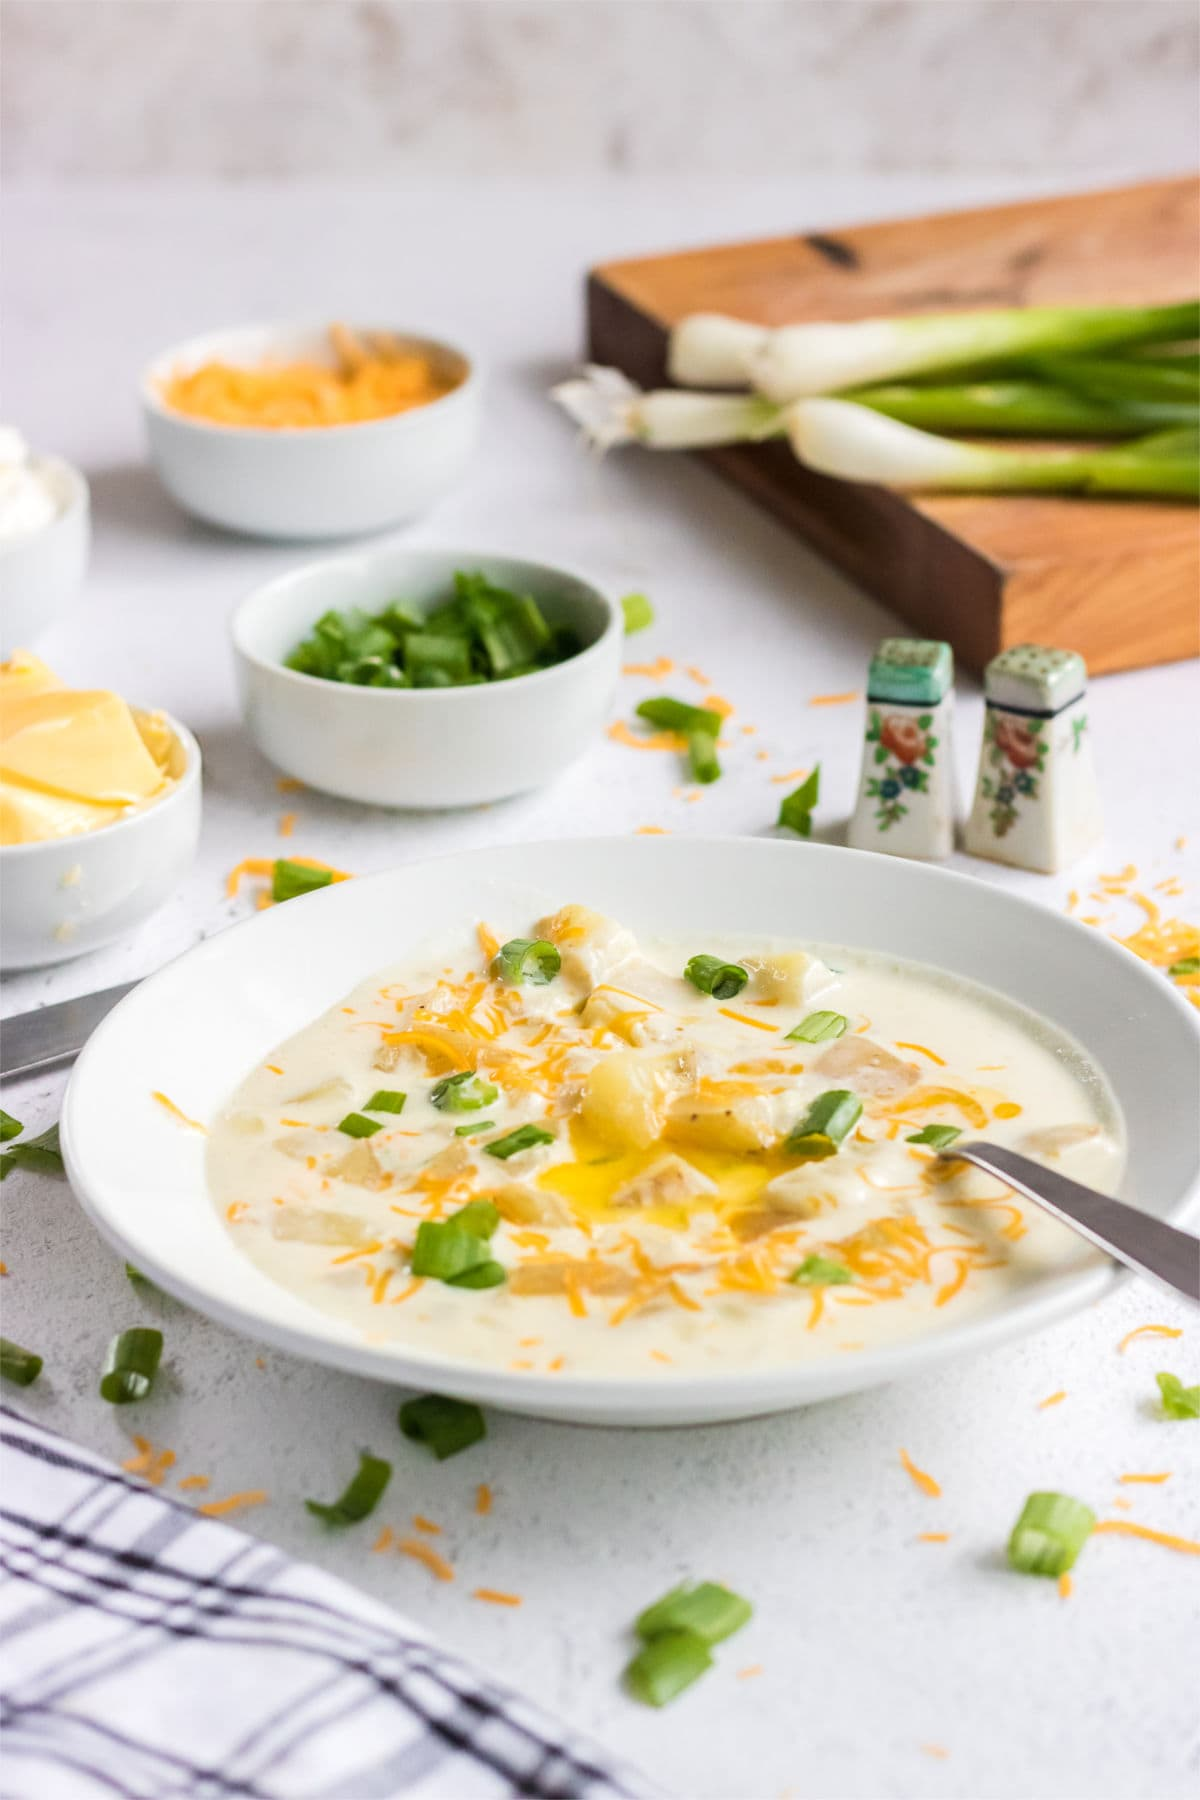 A bowl of creamy soup garnished with cheese and green onion.